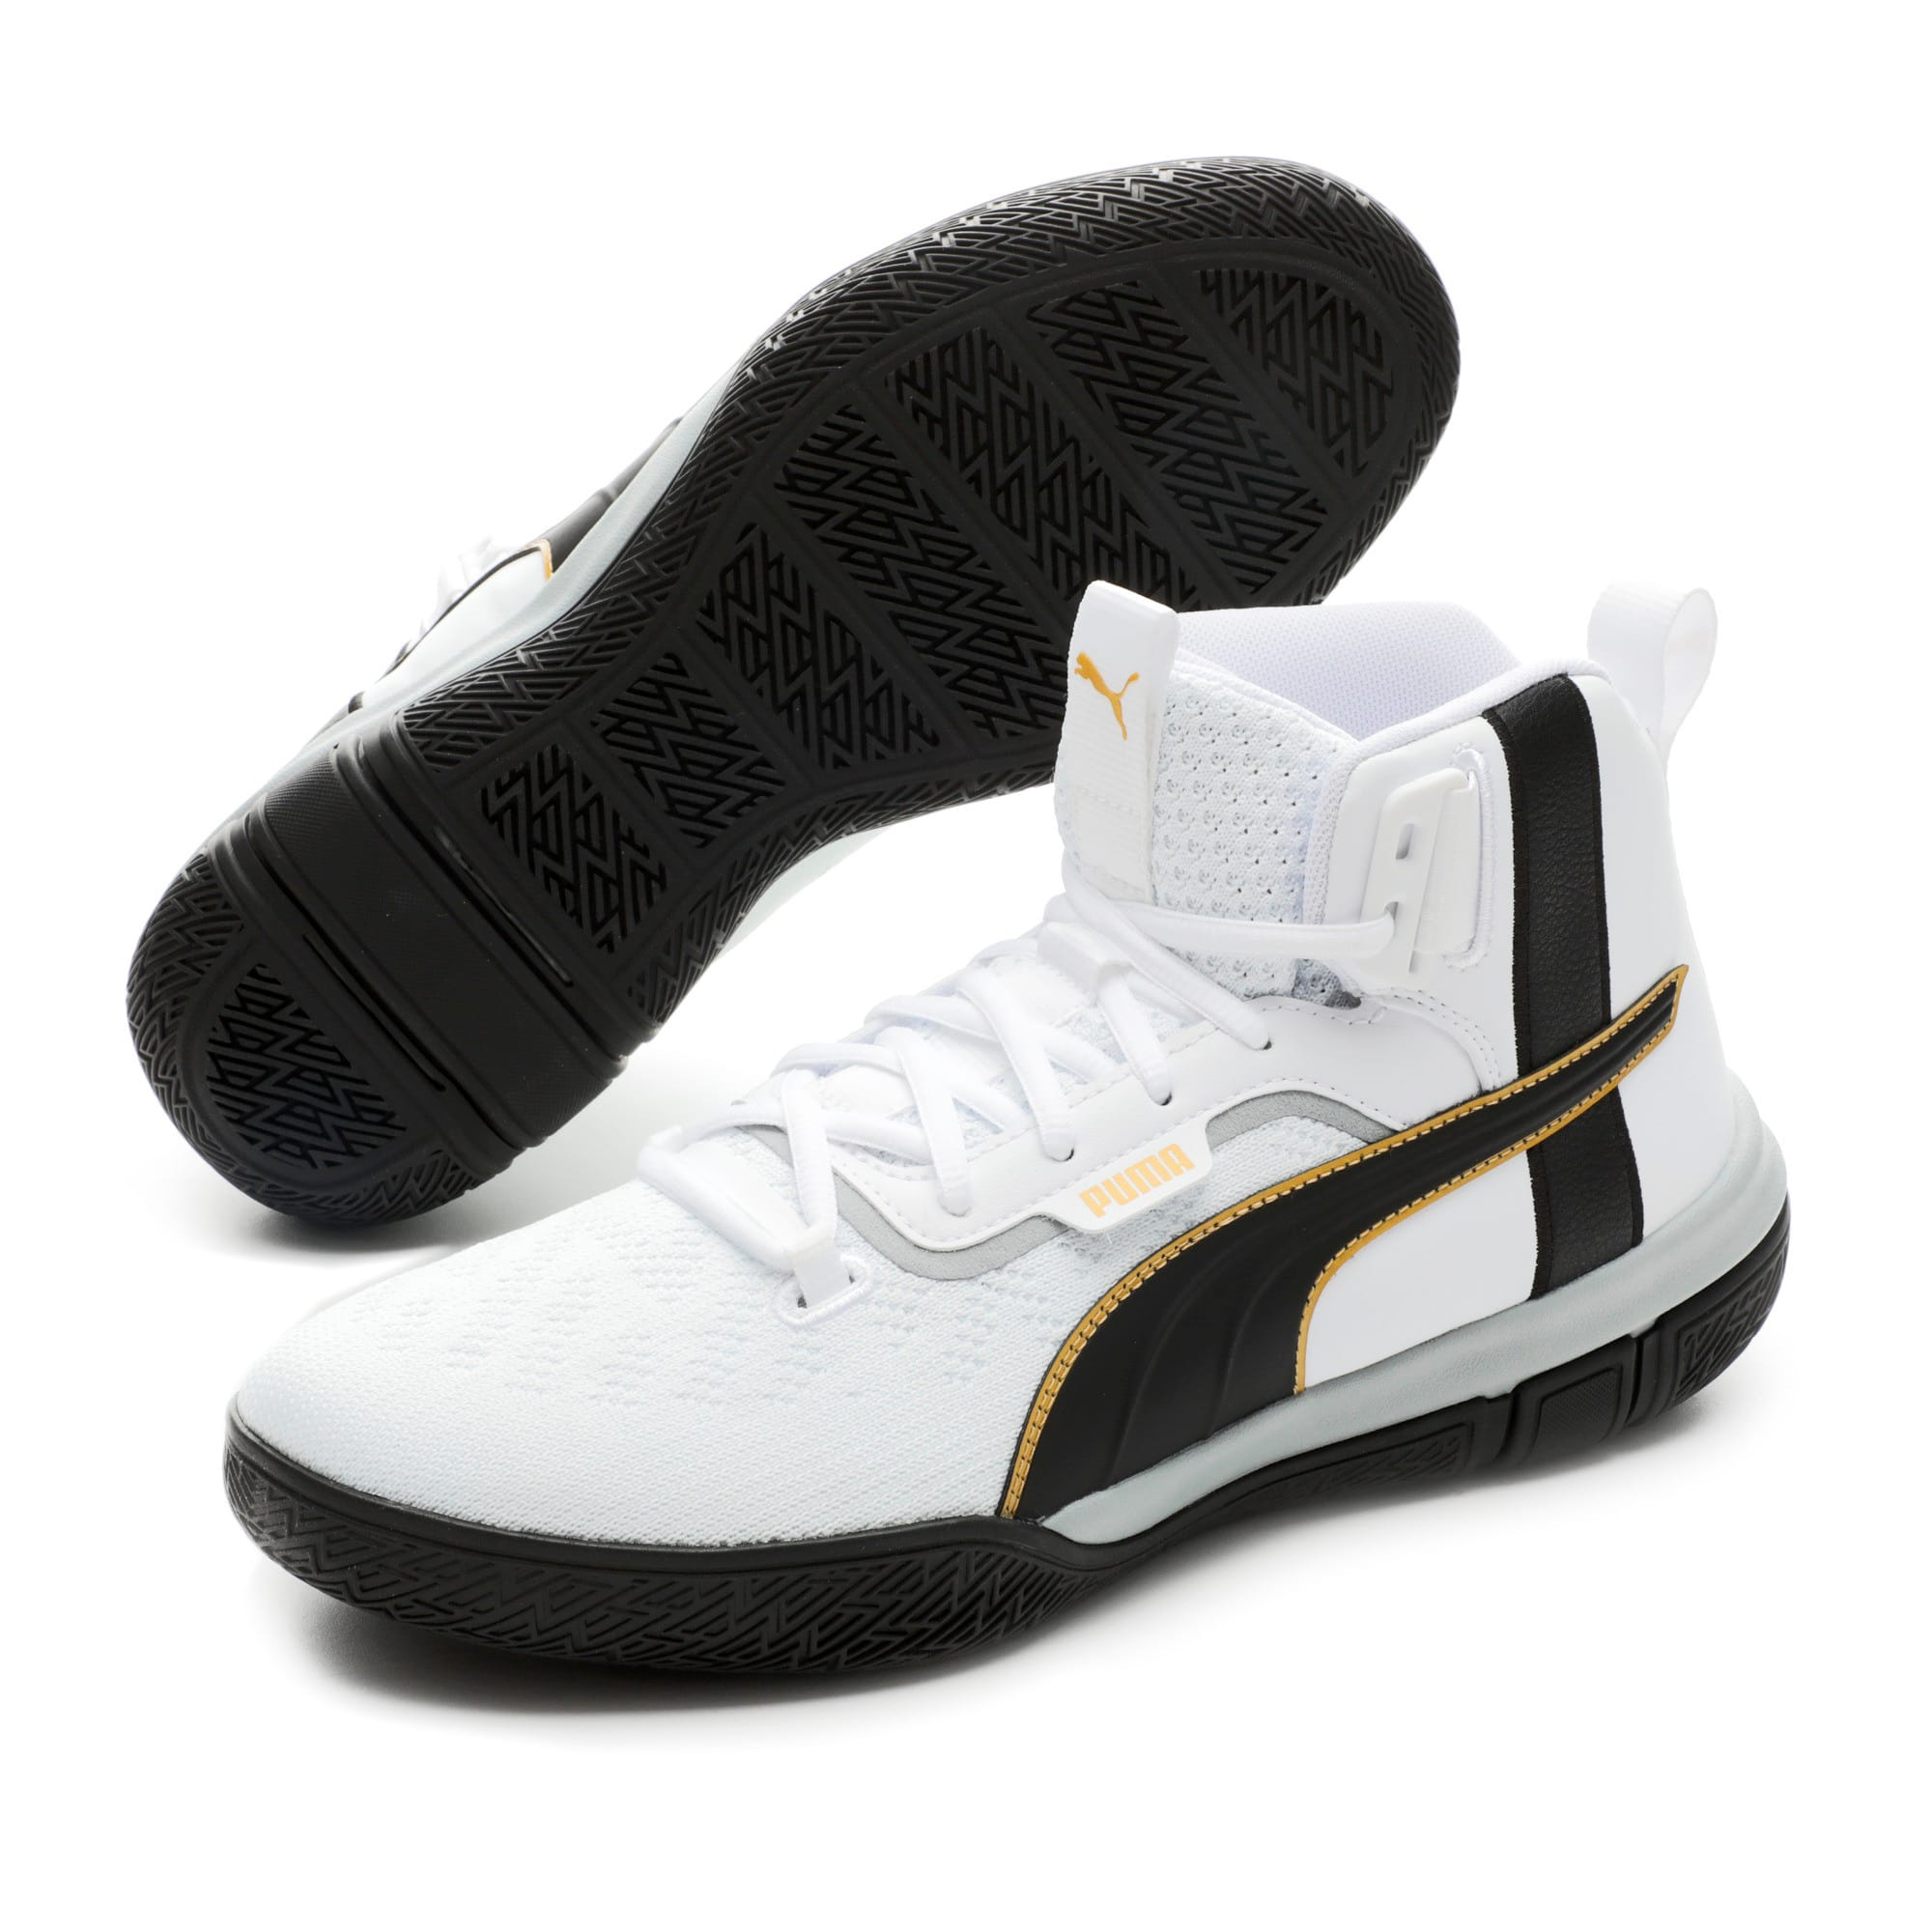 Thumbnail 2 of Legacy '68 Basketball Shoes, Puma Black-Puma White, medium